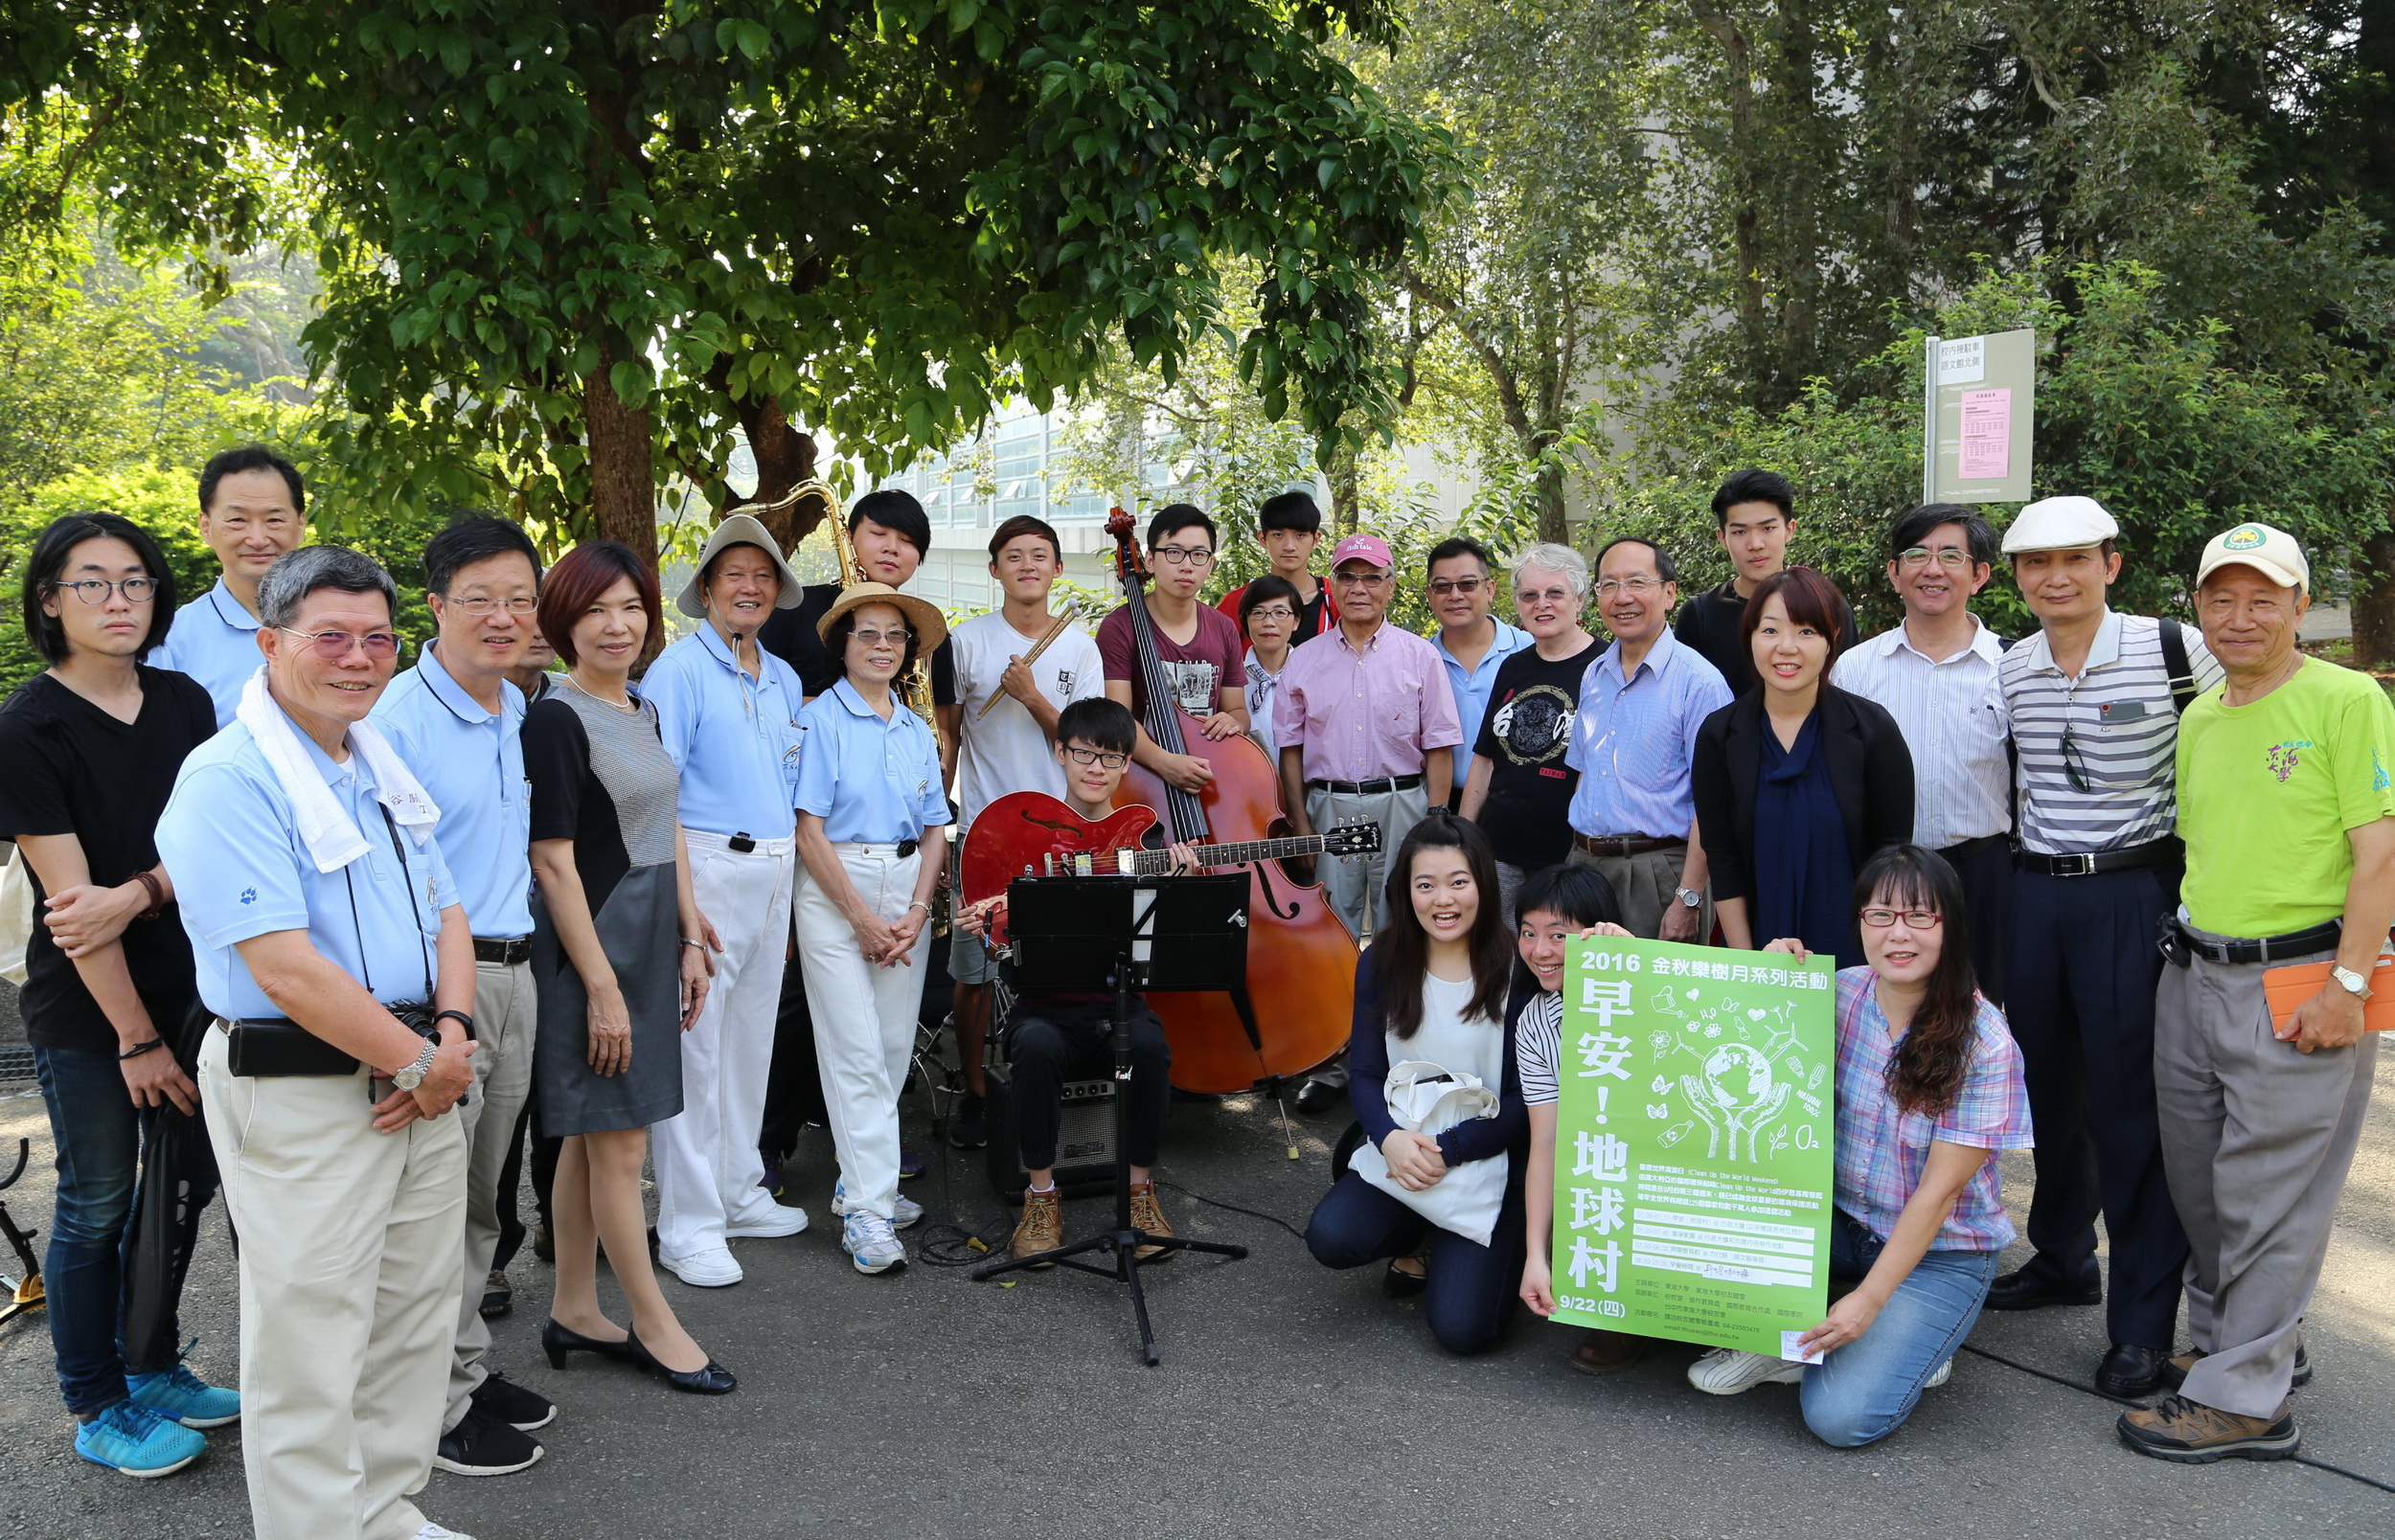 The picture shows the World Clean Day, Donghai University, this autumn, the eucalyptus environmental protection month starts, the alumni teachers and students enjoy the performance of the jazz concert after cleaning.